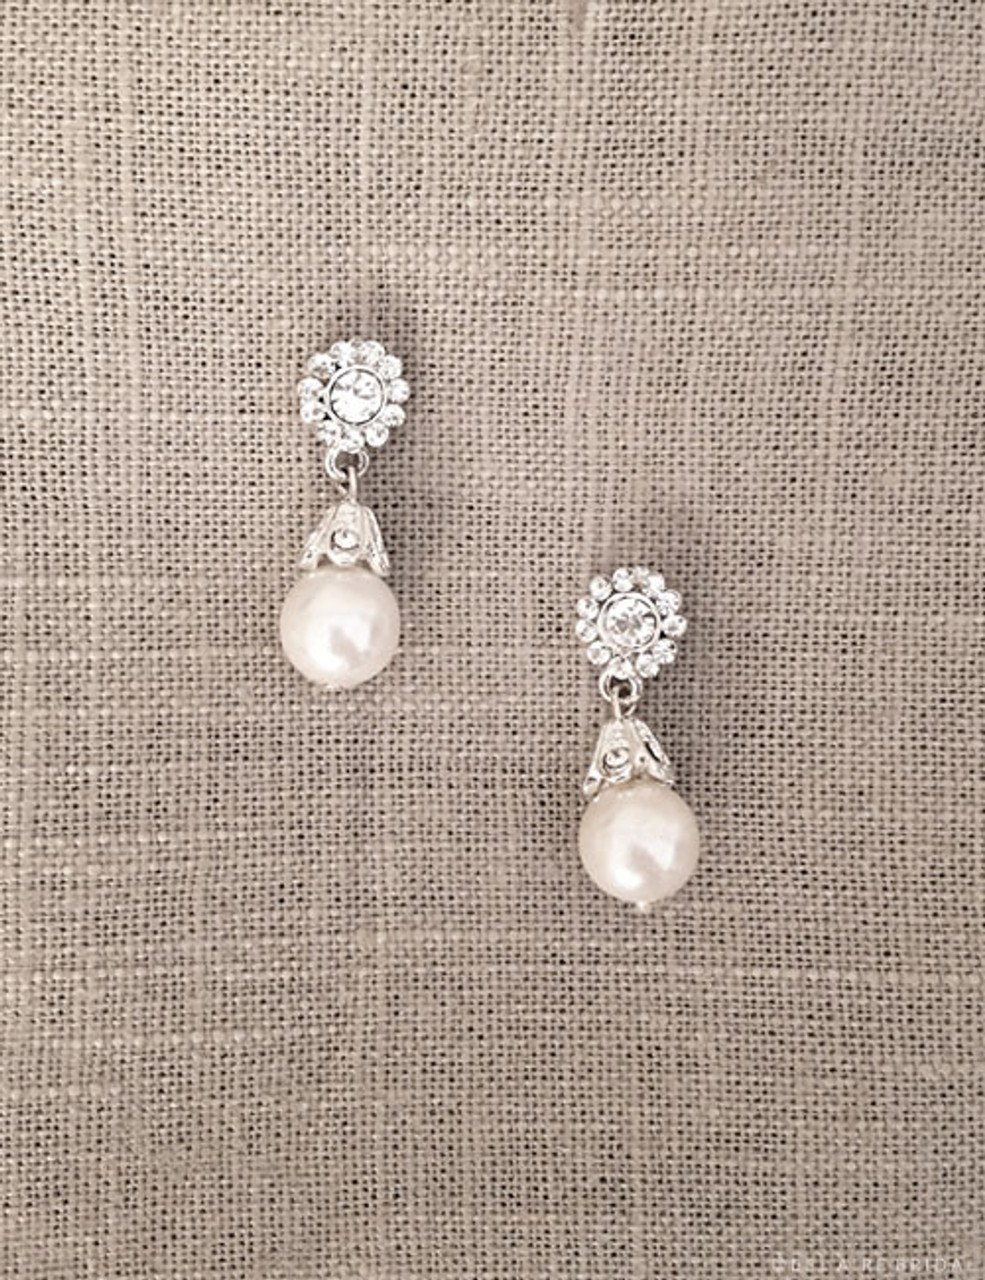 Bel Aire Bridal Earrings EA256 - Rhinestone and pearl drop earrings